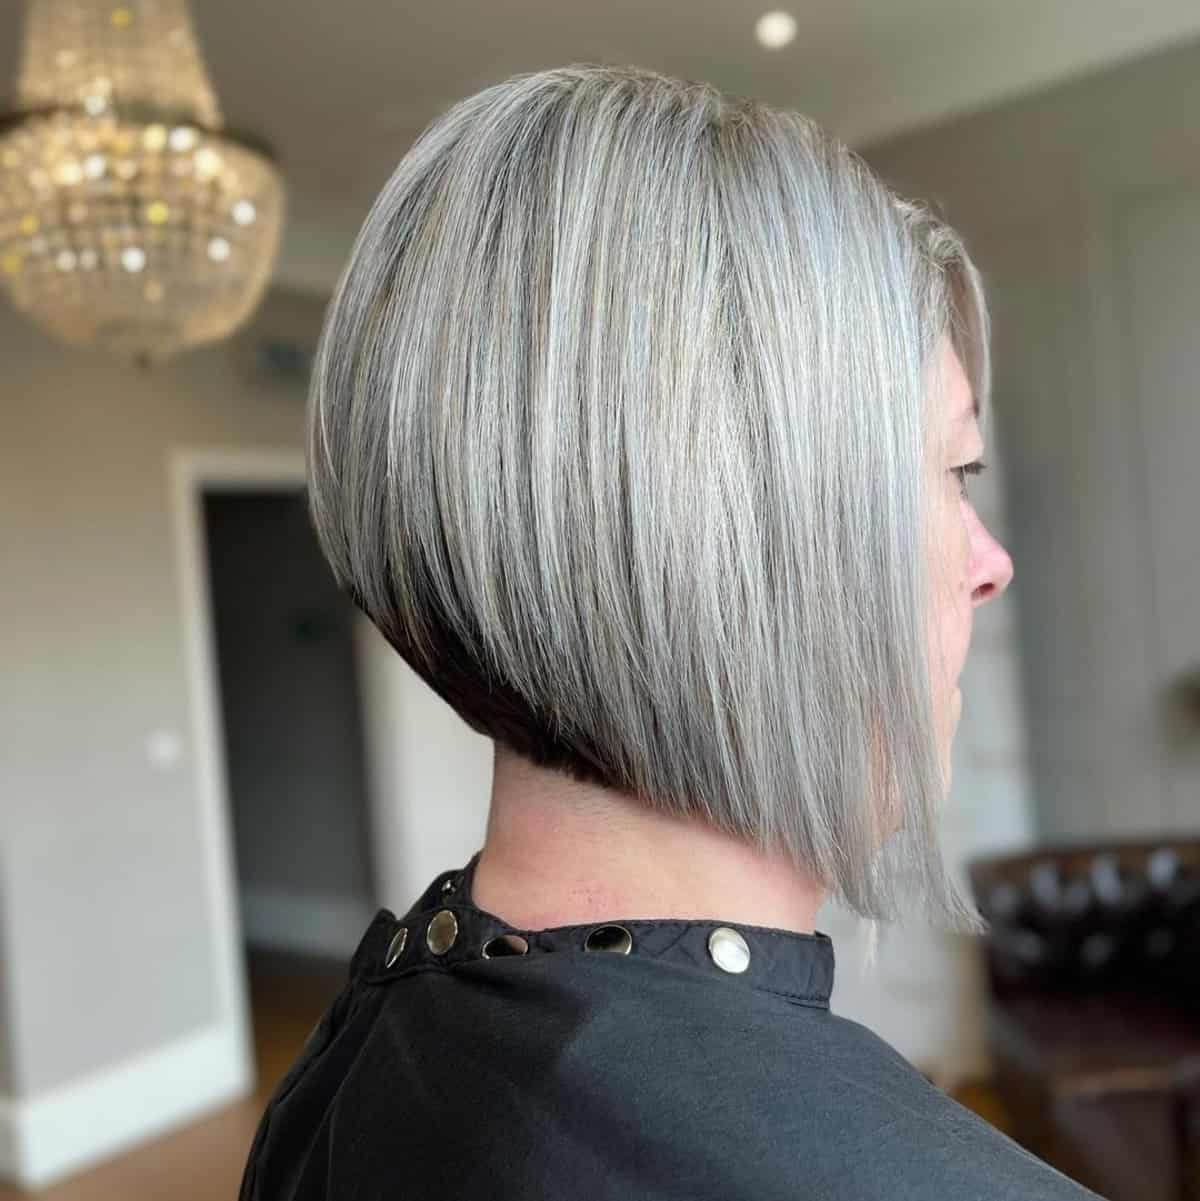 fun effortless hairstyle on woman over 50